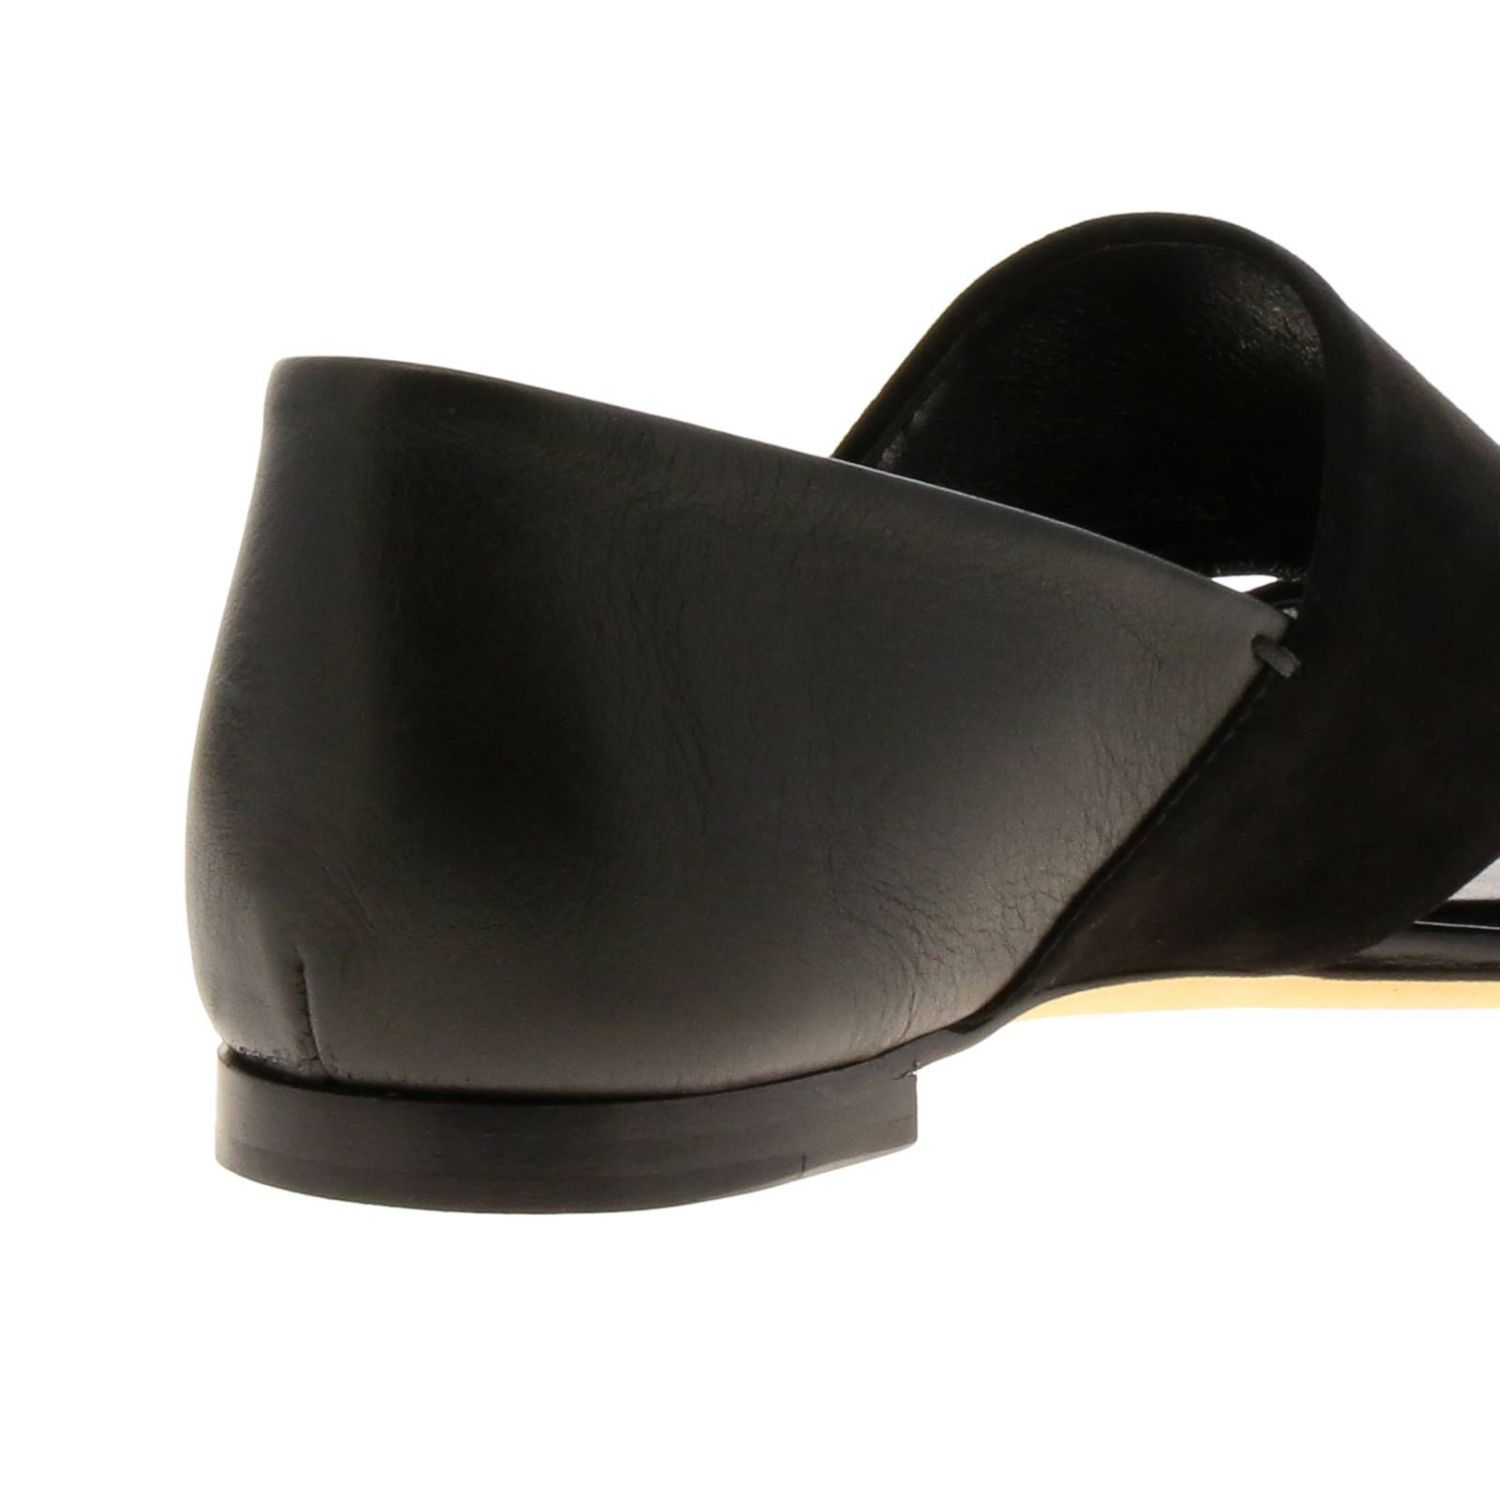 Sandales plates Tods: Chaussures femme Tod's noir 4